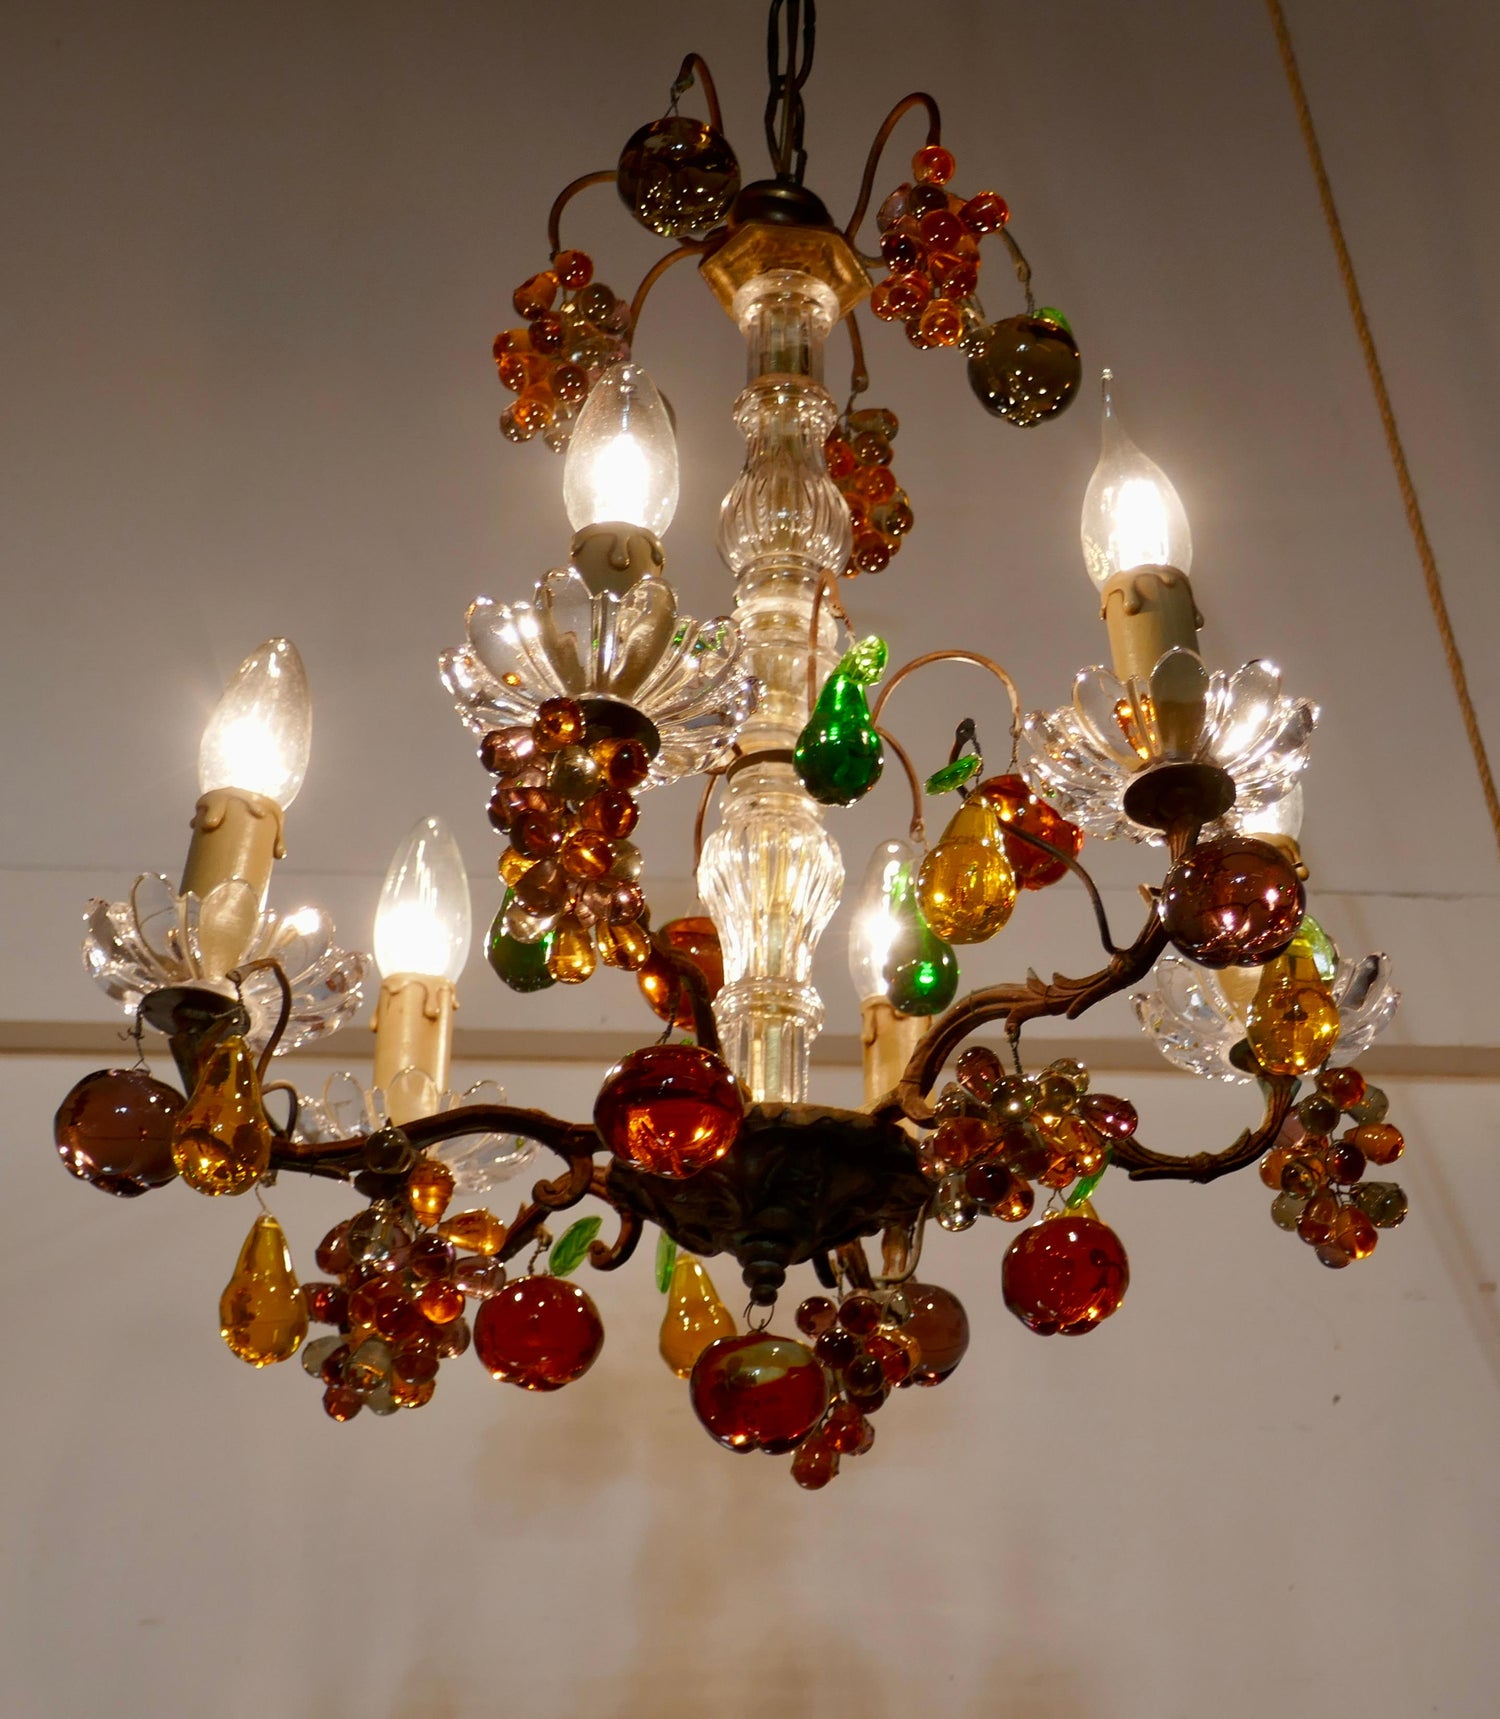 6 Branch Chandelier Hung with Colored Crystal Fruits, Grapes, Apples and Pears